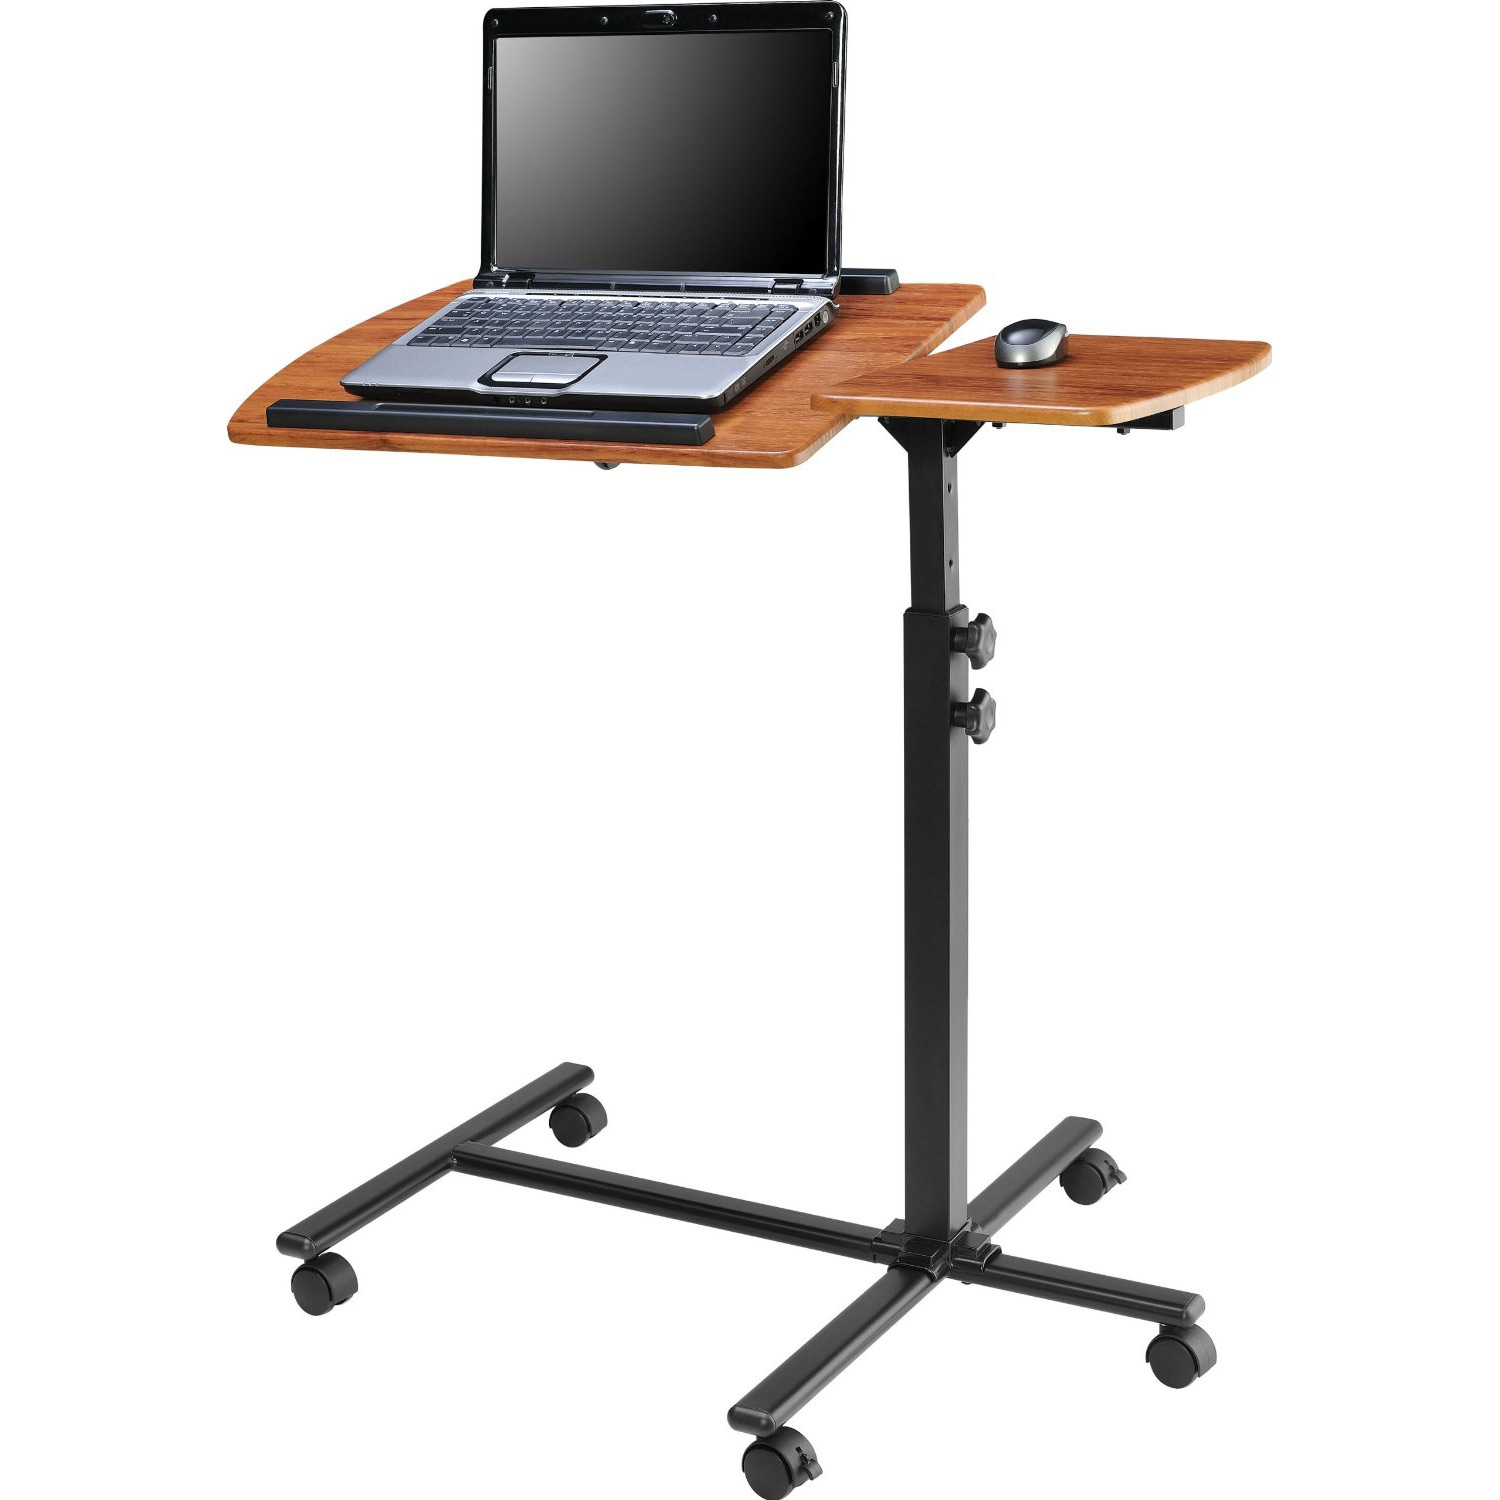 workstation standing stand desk of desks to high adjustable table computer convertible elevated converter height ikea full up with regard best legs sit size